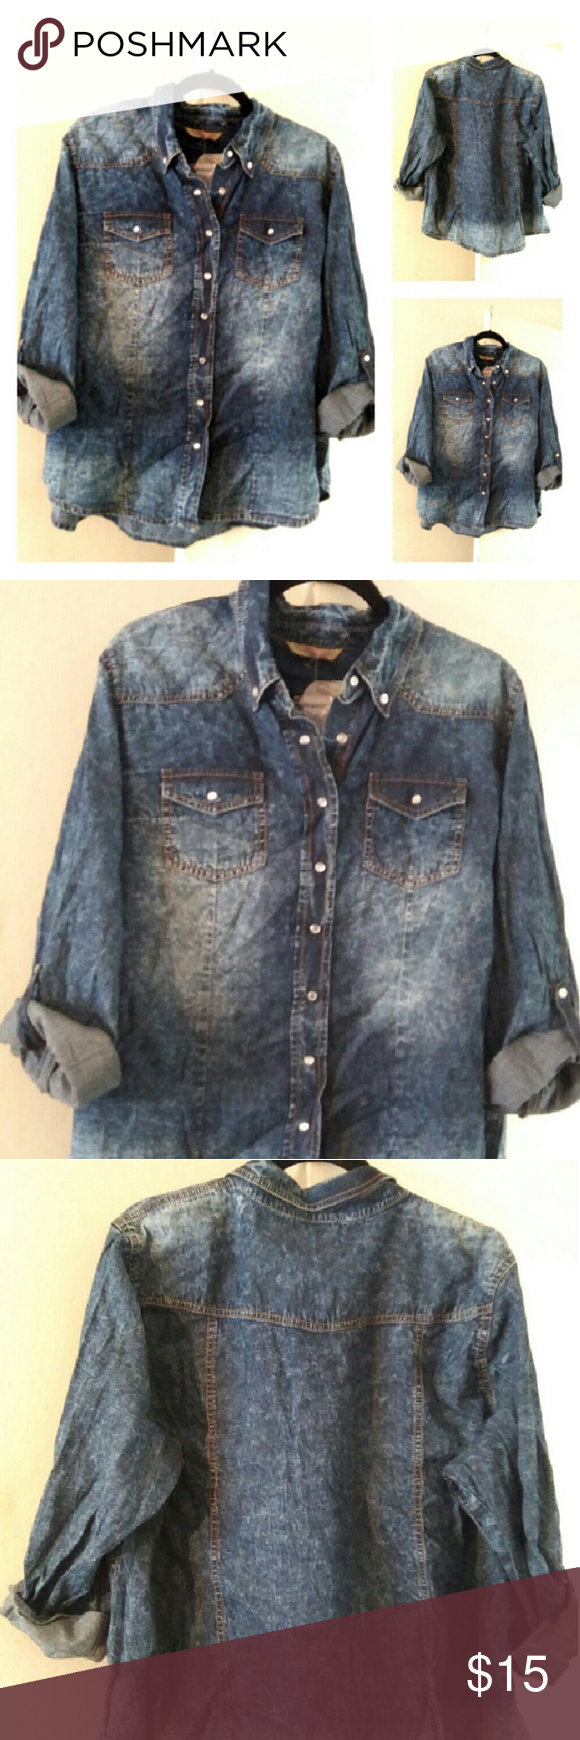 Distressed Wash Jean Shirt Distresses Blue wash...snaps up...comes with extra snaps...front pockets...never worn...New... Price tag fell off...distressed garment tag and extra buttons pkg still attached  Size 2X 100% Cotton  Length 25 inch measured hanging  Armpit seam  to Armpit seam...26 inch  LISTED PRICE IS LOWEST PRICE  No price drops No offers Tops